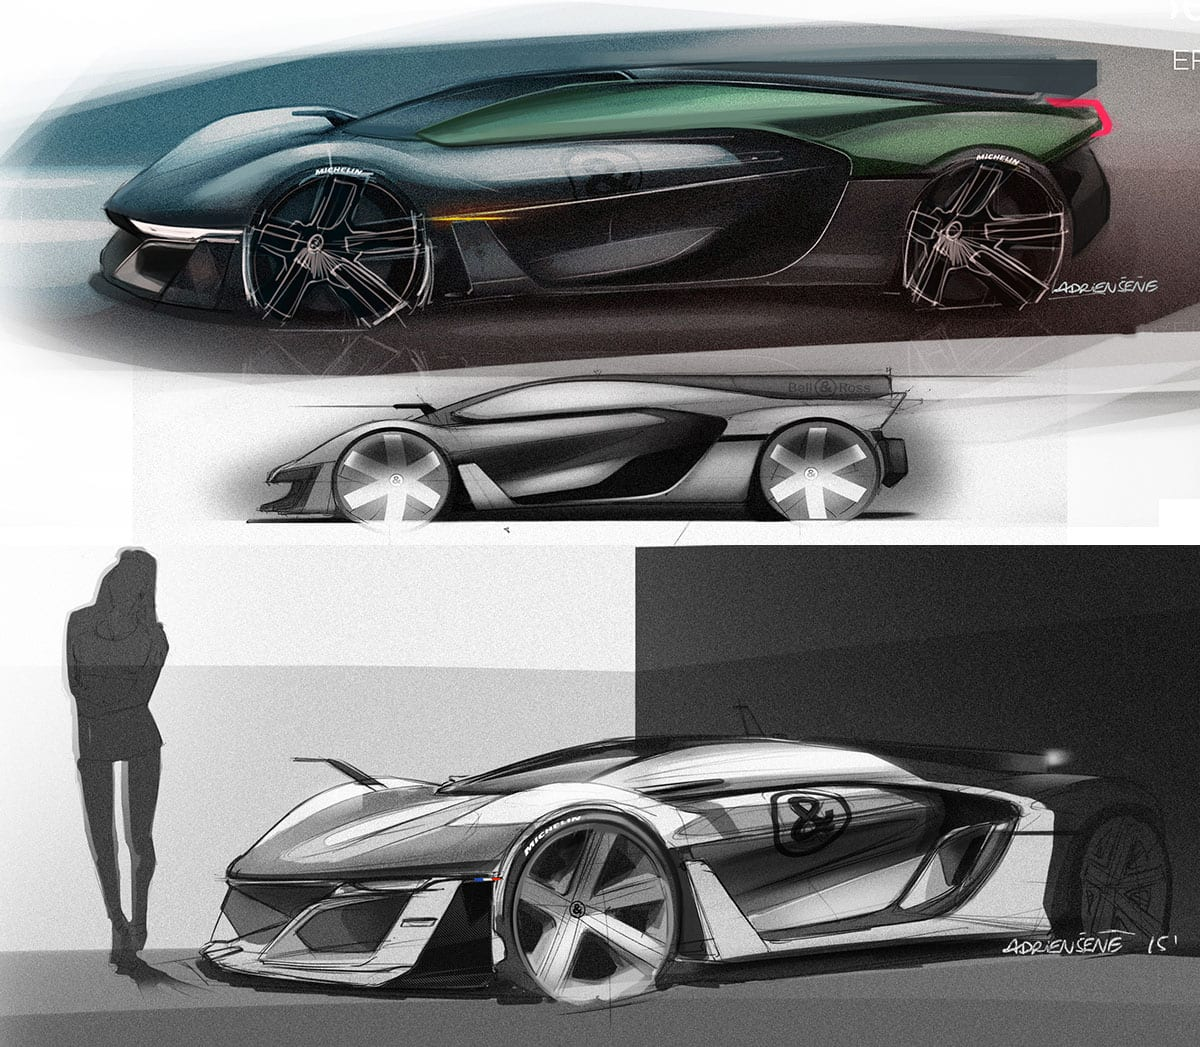 Bell-and-Ross-AeroGT-Concept-Design-Sketches-by-Adriene-Sene-01